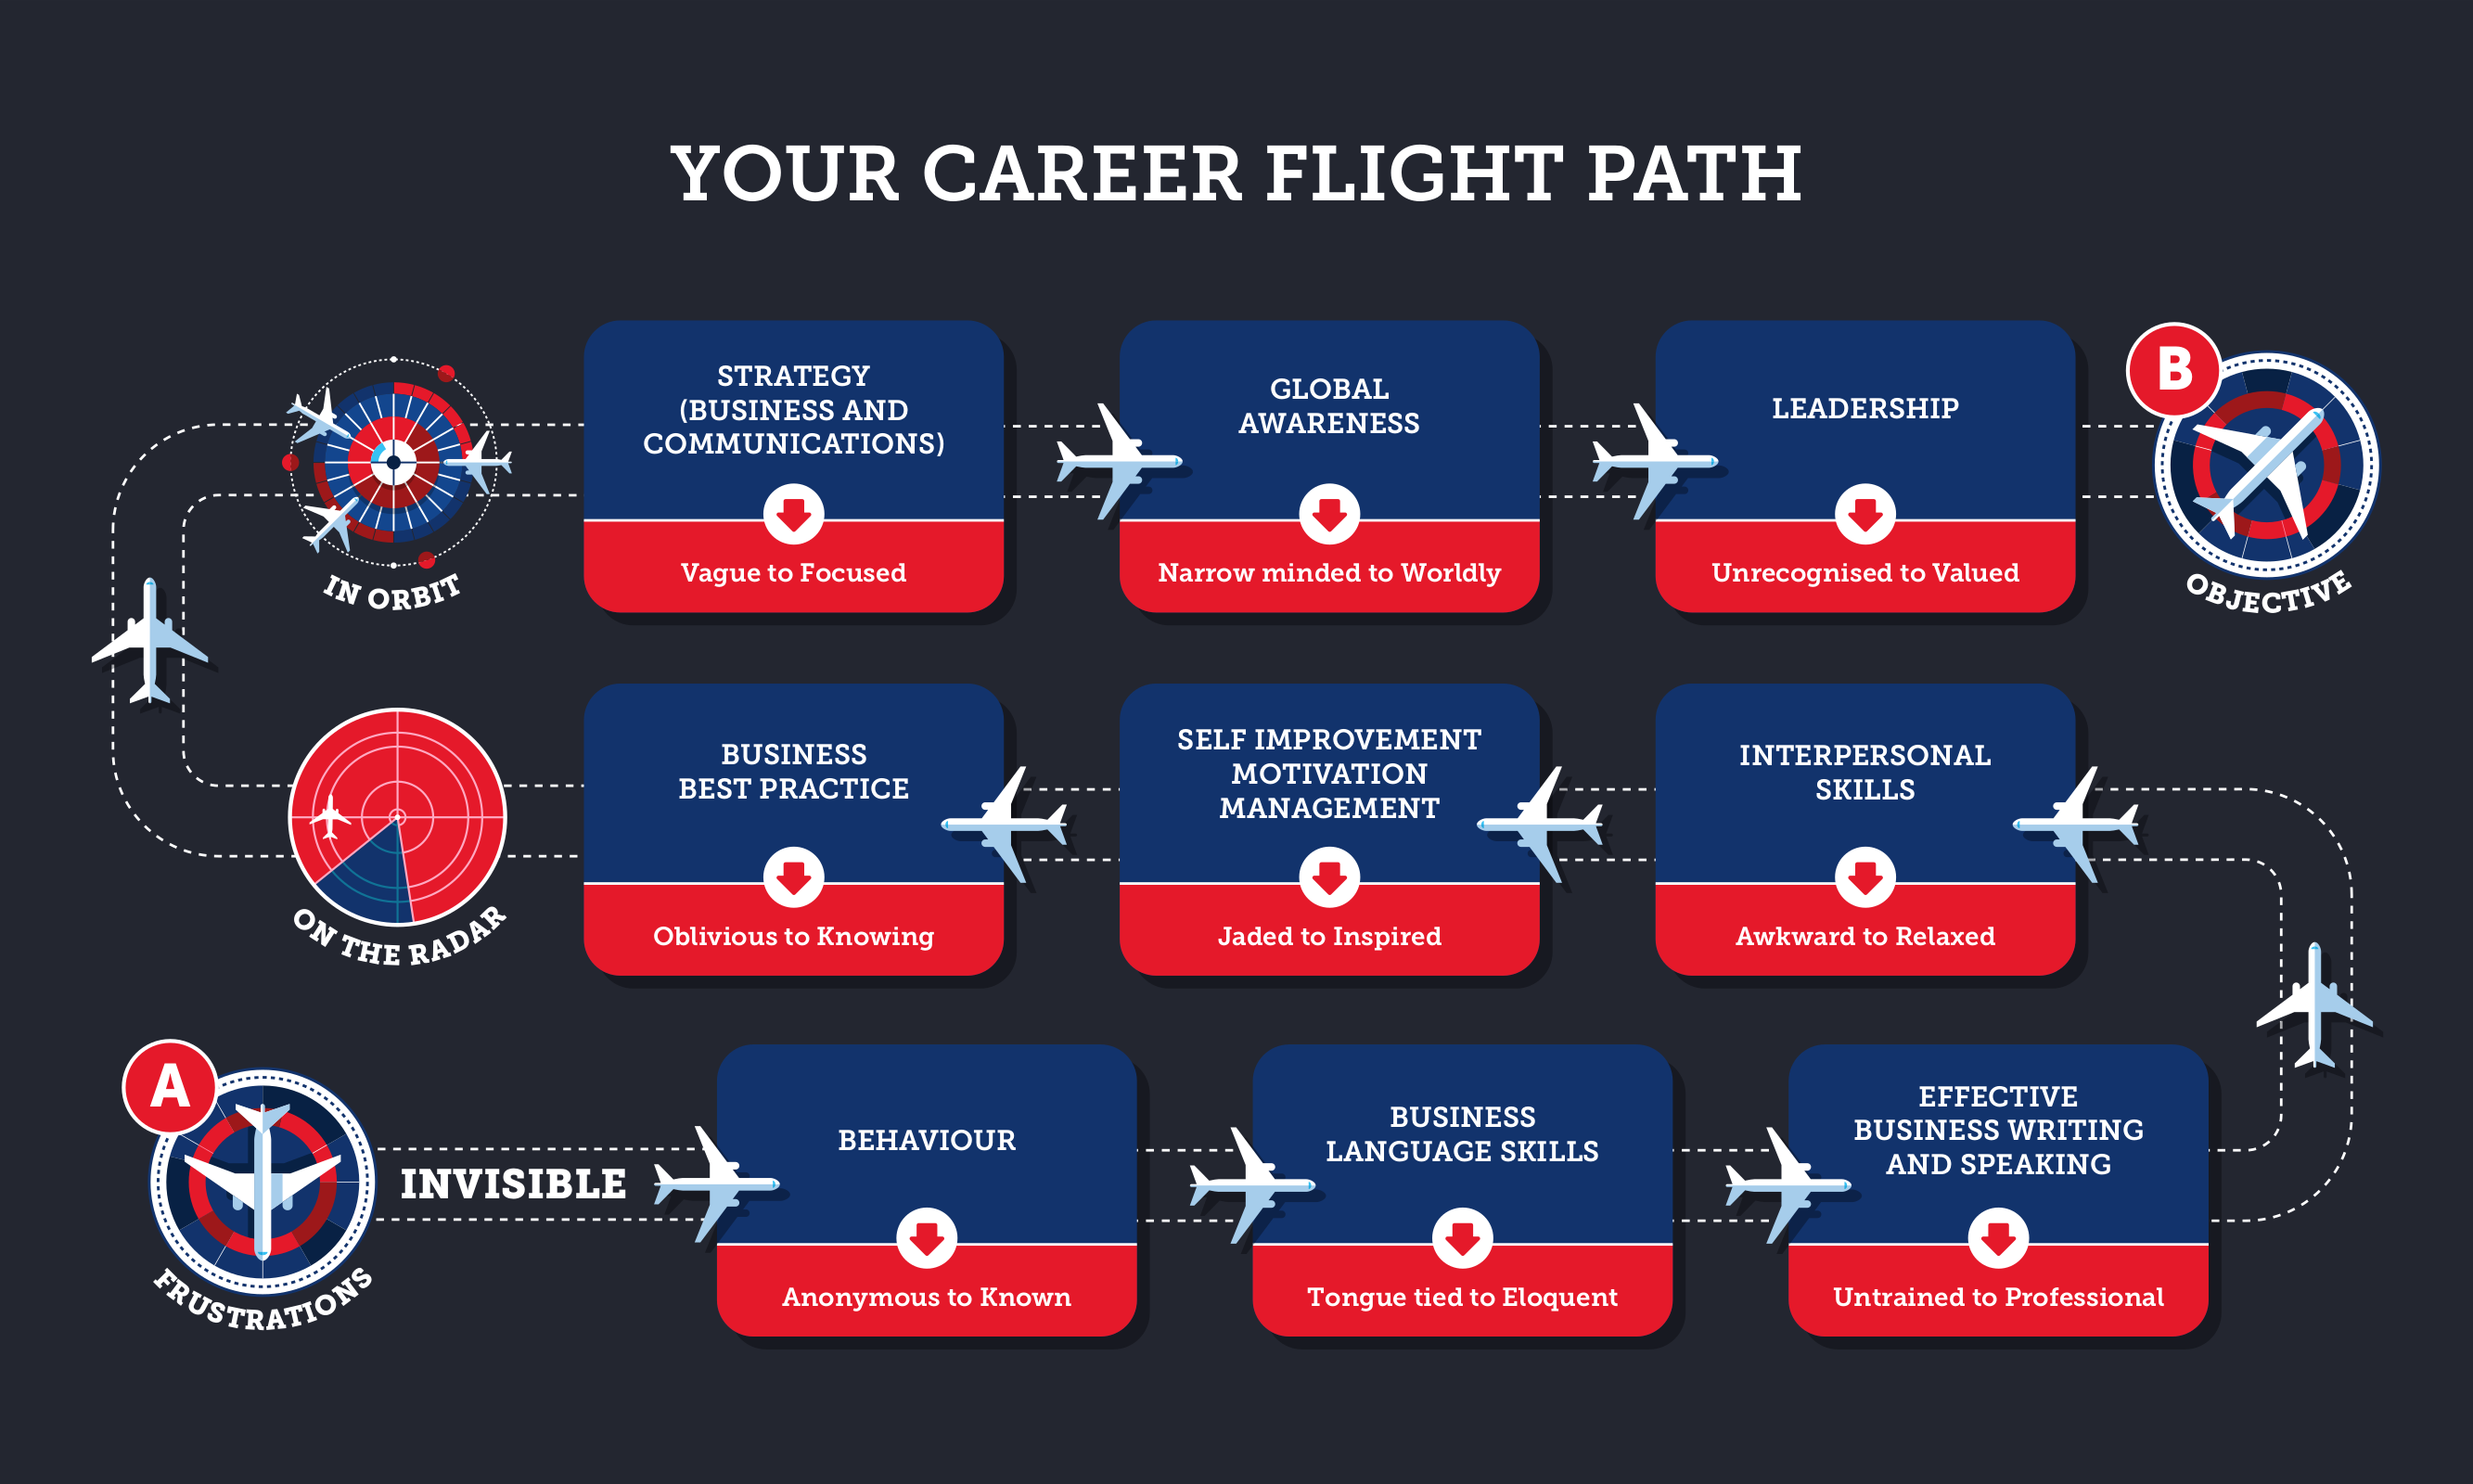 chelsea school career flight path